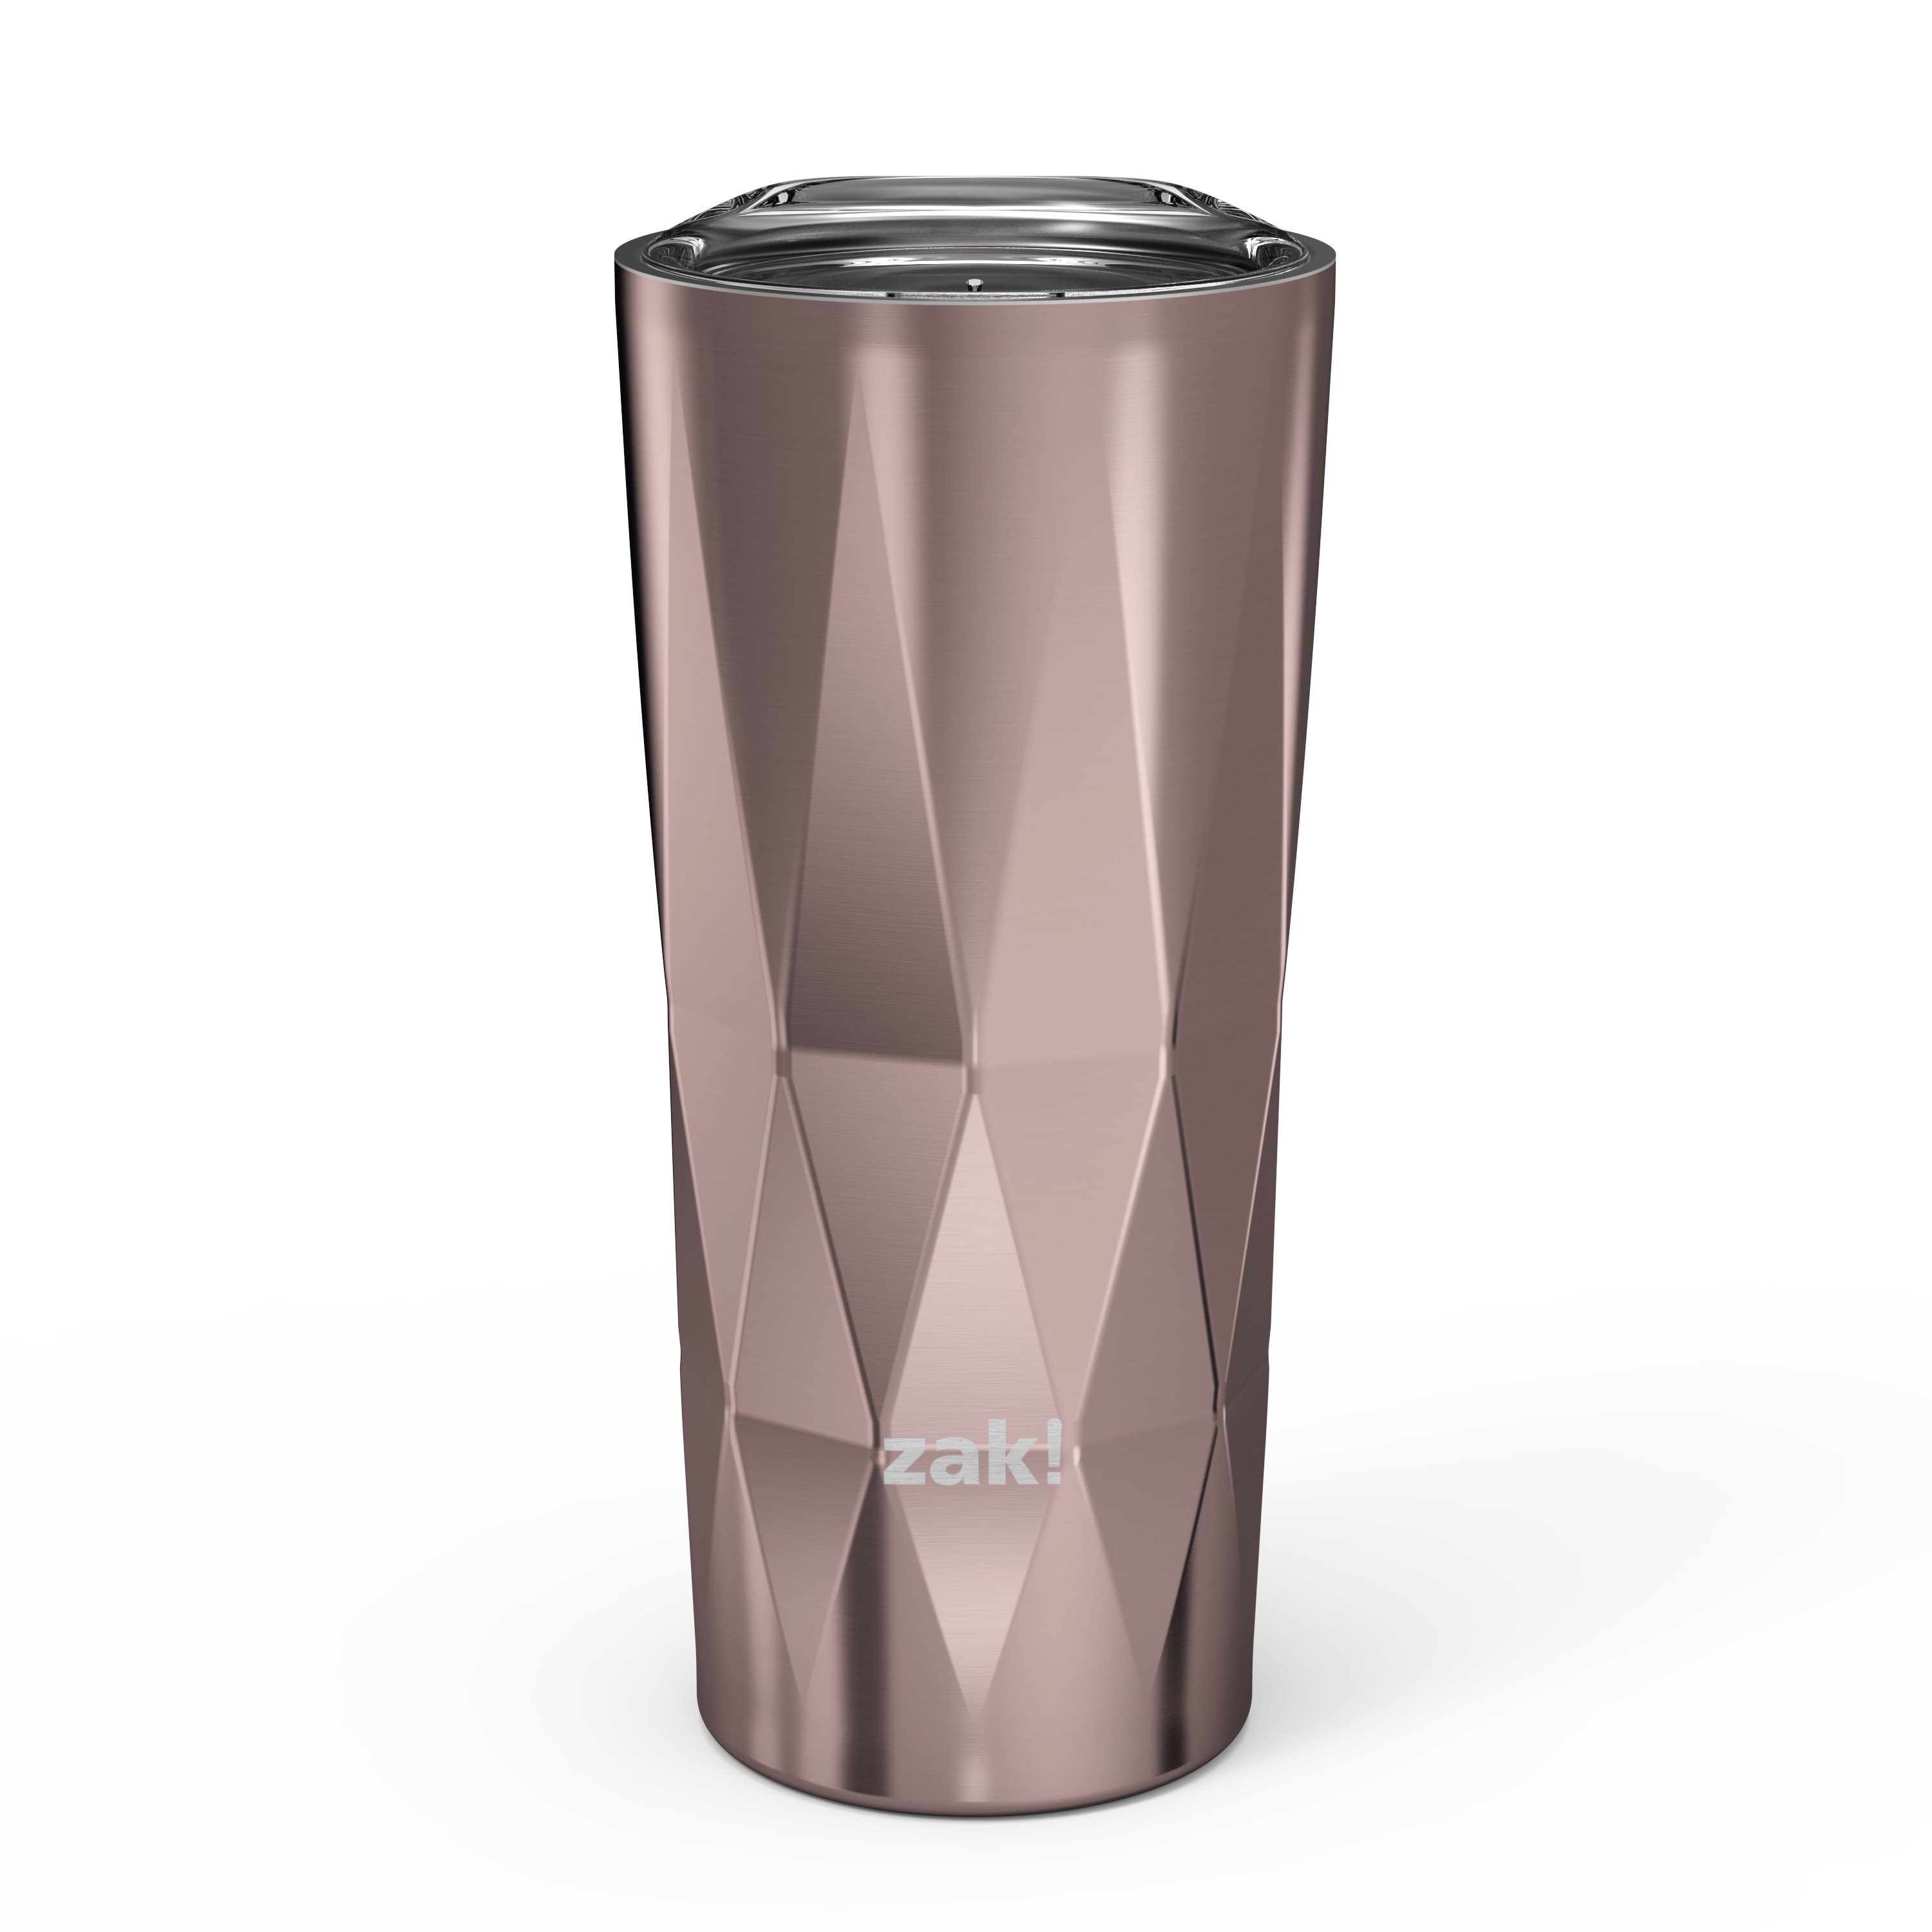 Fractal 16 ounce Vacuum Insulated Stainless Steel Tumbler, Rose Gold slideshow image 1